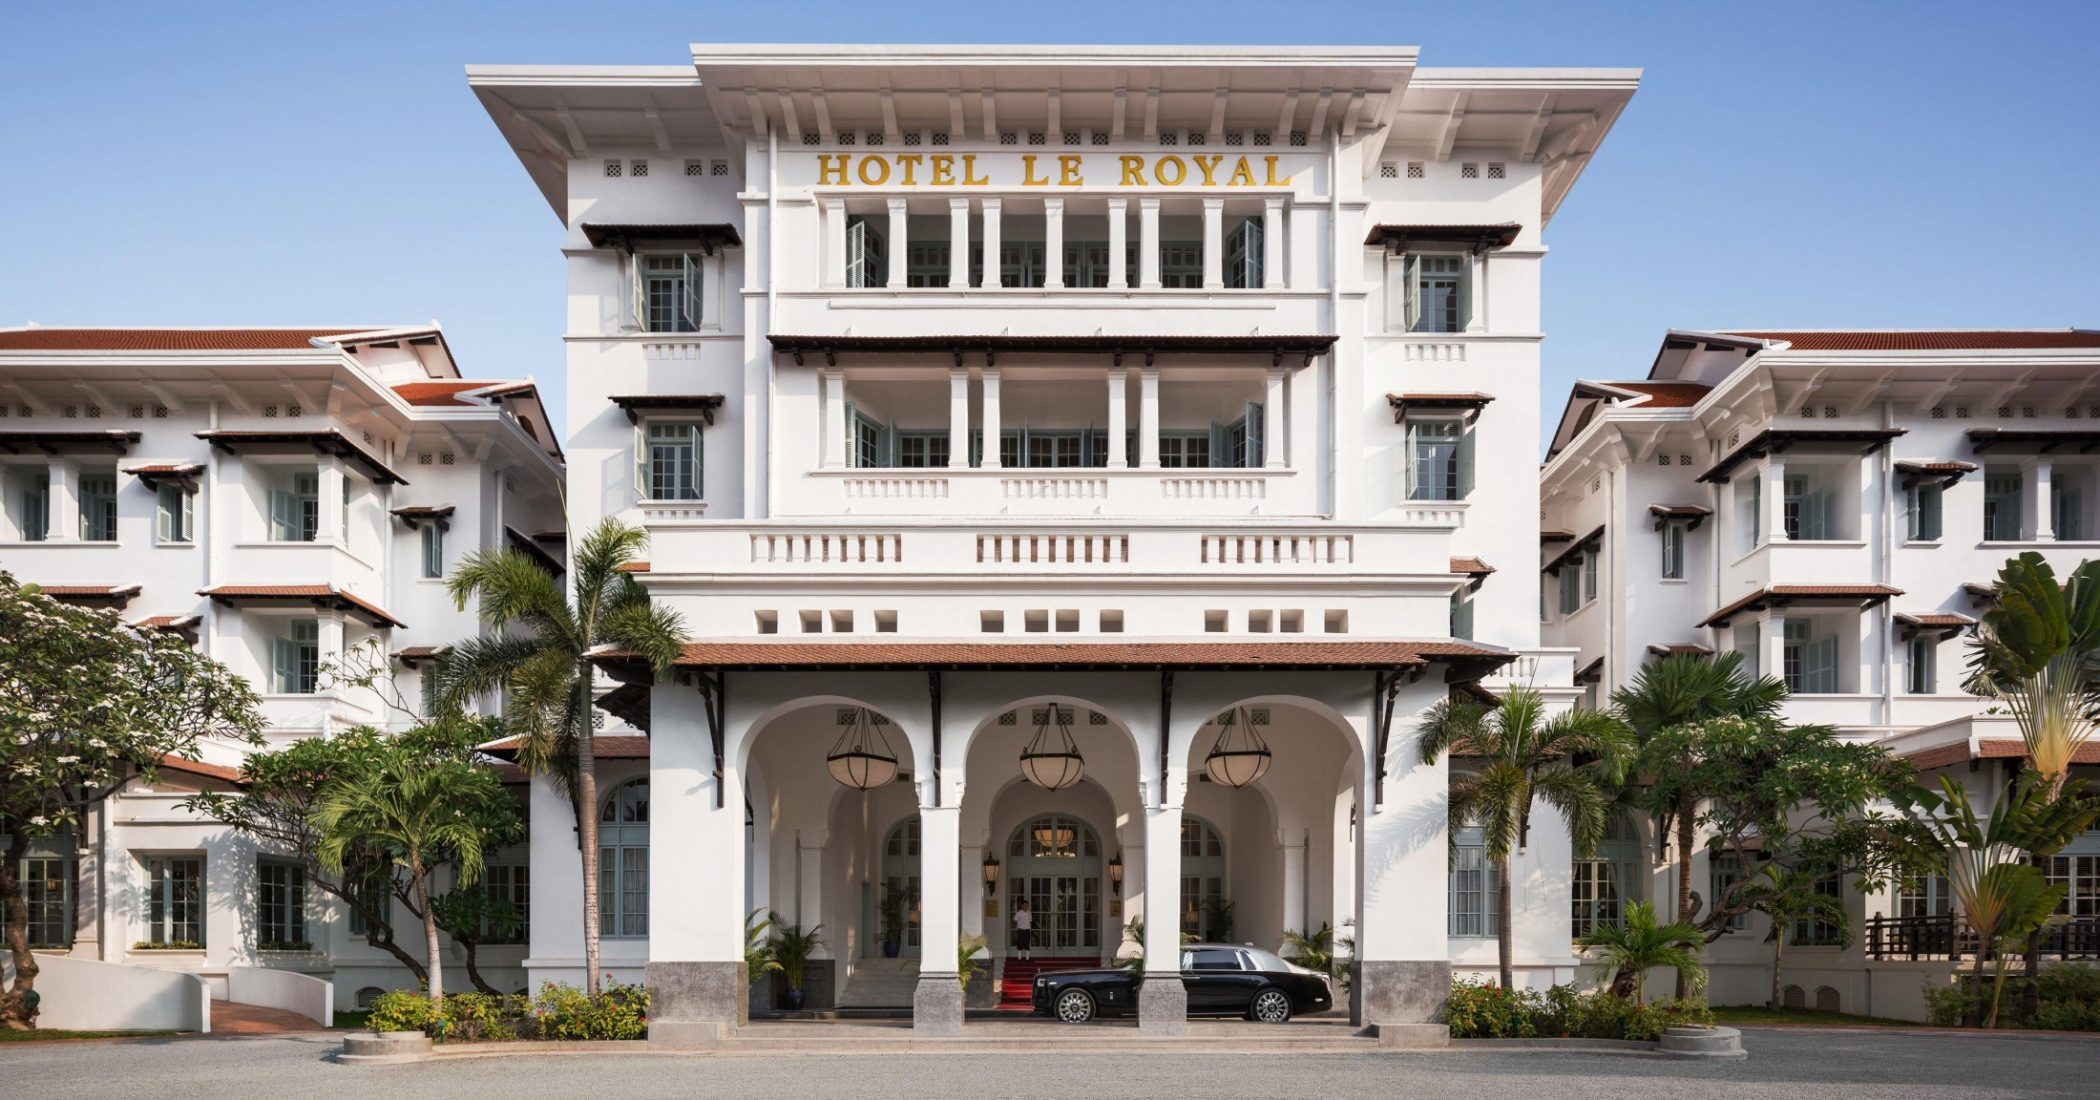 Raffles Hotel Le Royal Phnom Penh - Welcome to Raffles Hotel Le Royal